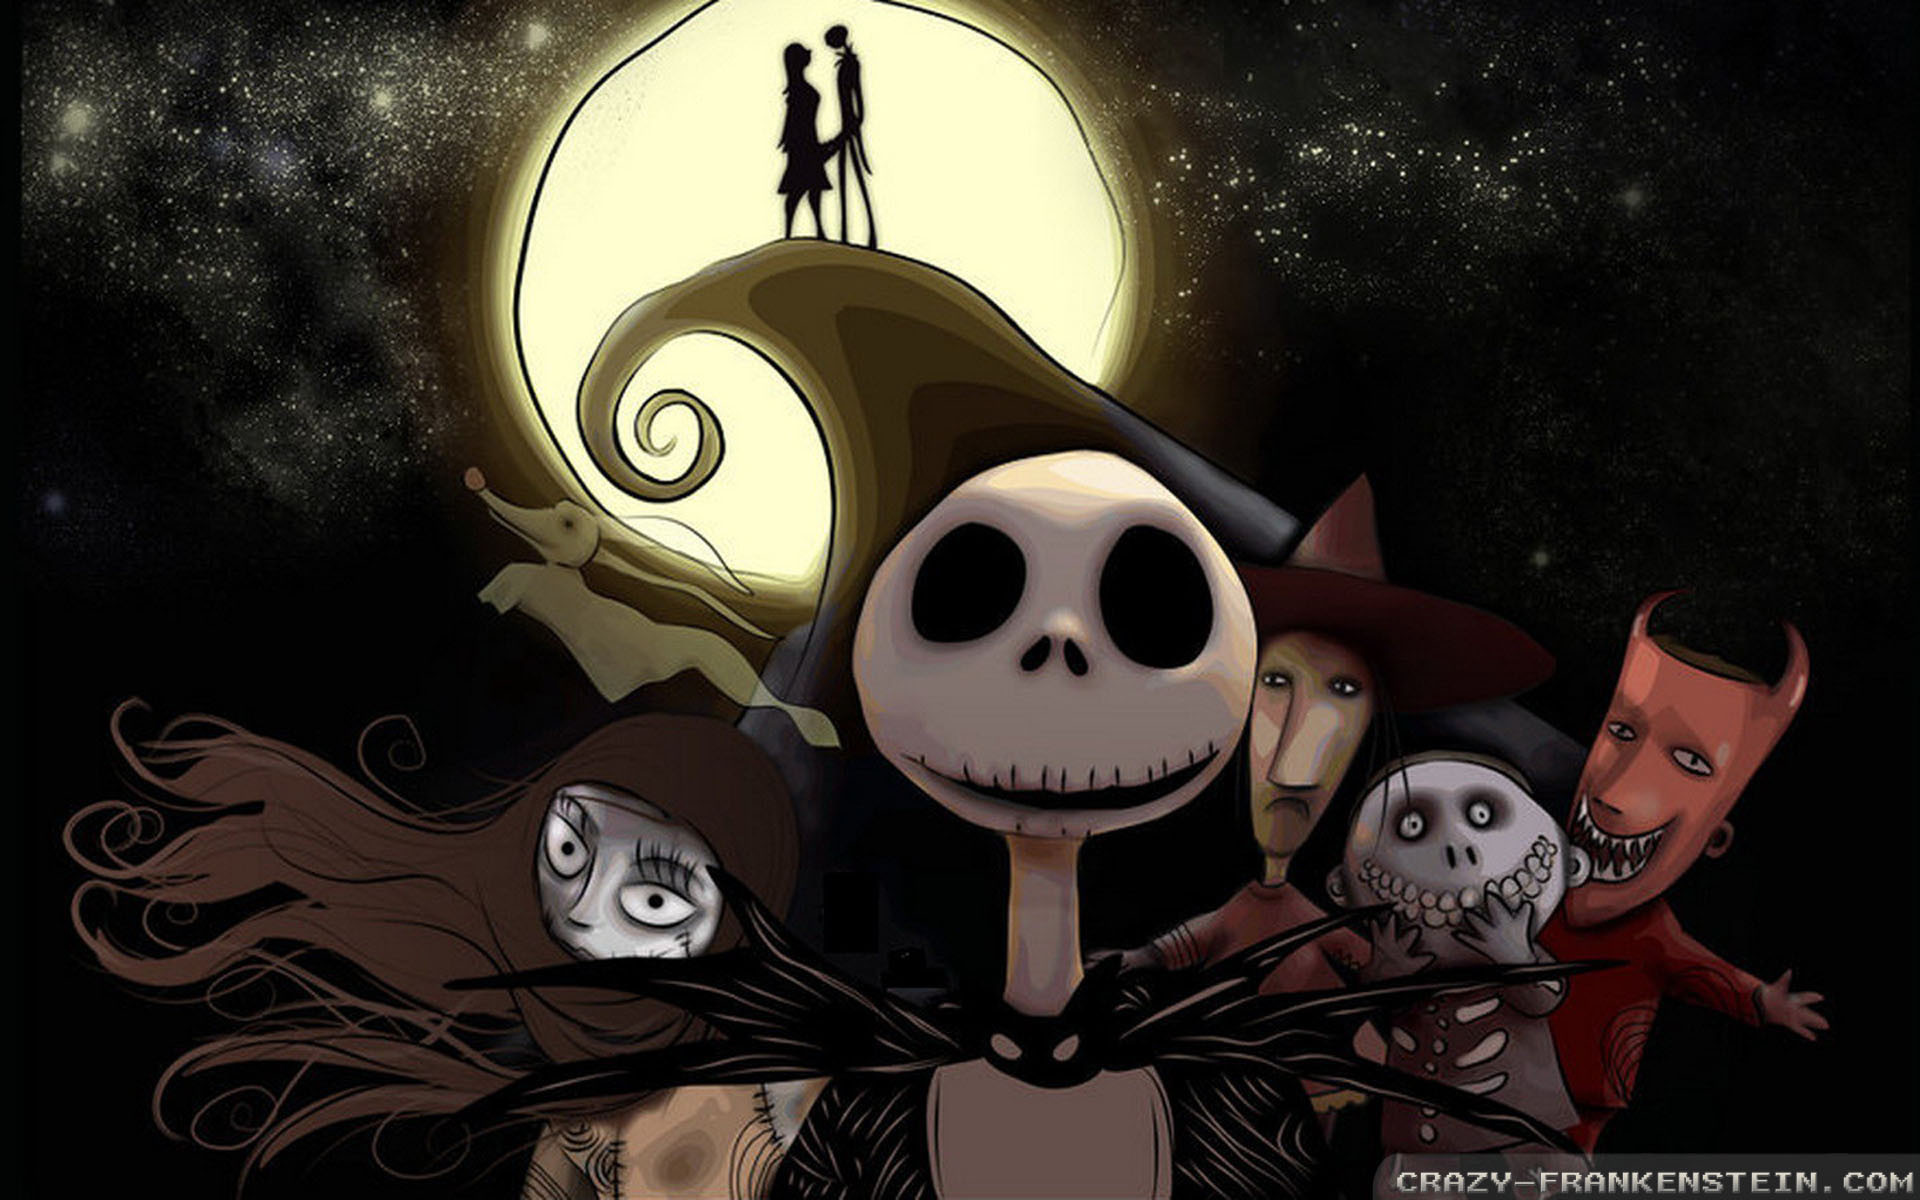 1920x1200 Wallpaper: Nightmare before Christmas wallpapers 4. Resolution: 1024x768 |  1280x1024 | 1600x1200. Widescreen Res: 1440x900 | 1680x1050 |